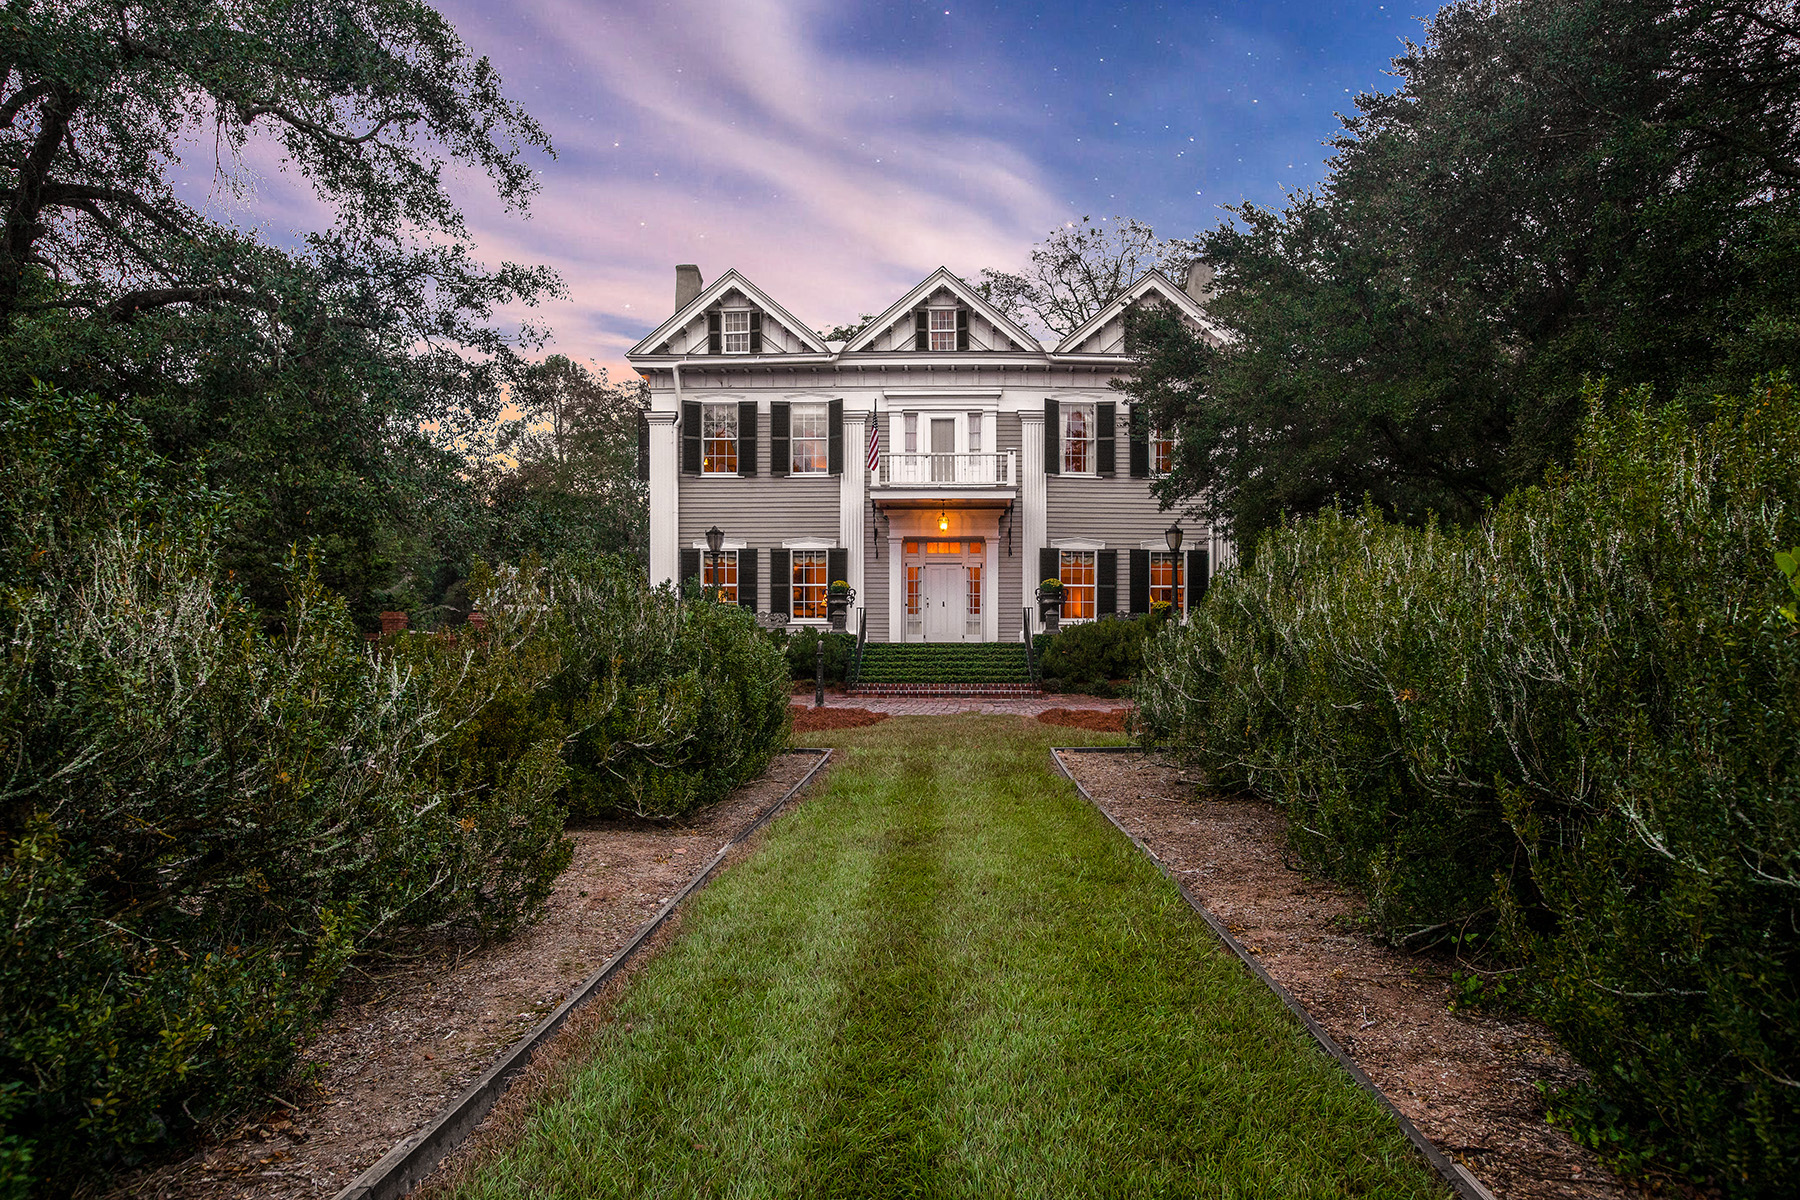 Single Family Homes for Sale at Restored 1818 Home! One of The Most Distinguished Properties Of The South! 847 Dixie Avenue Madison, Georgia 30650 United States